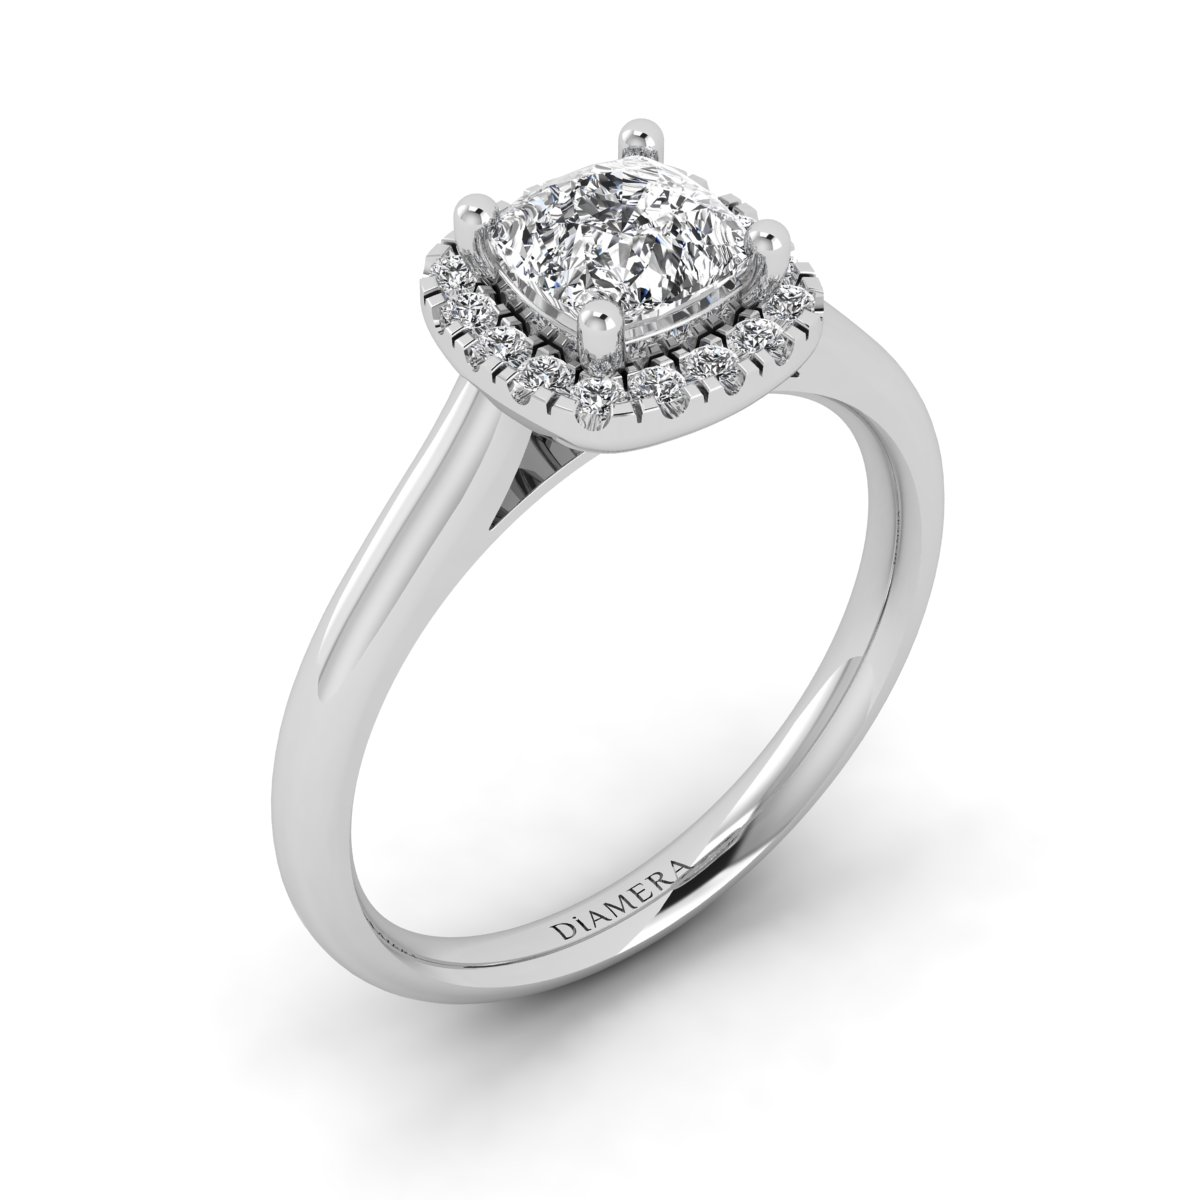 18K White Gold Classic Halo Engagement Ring